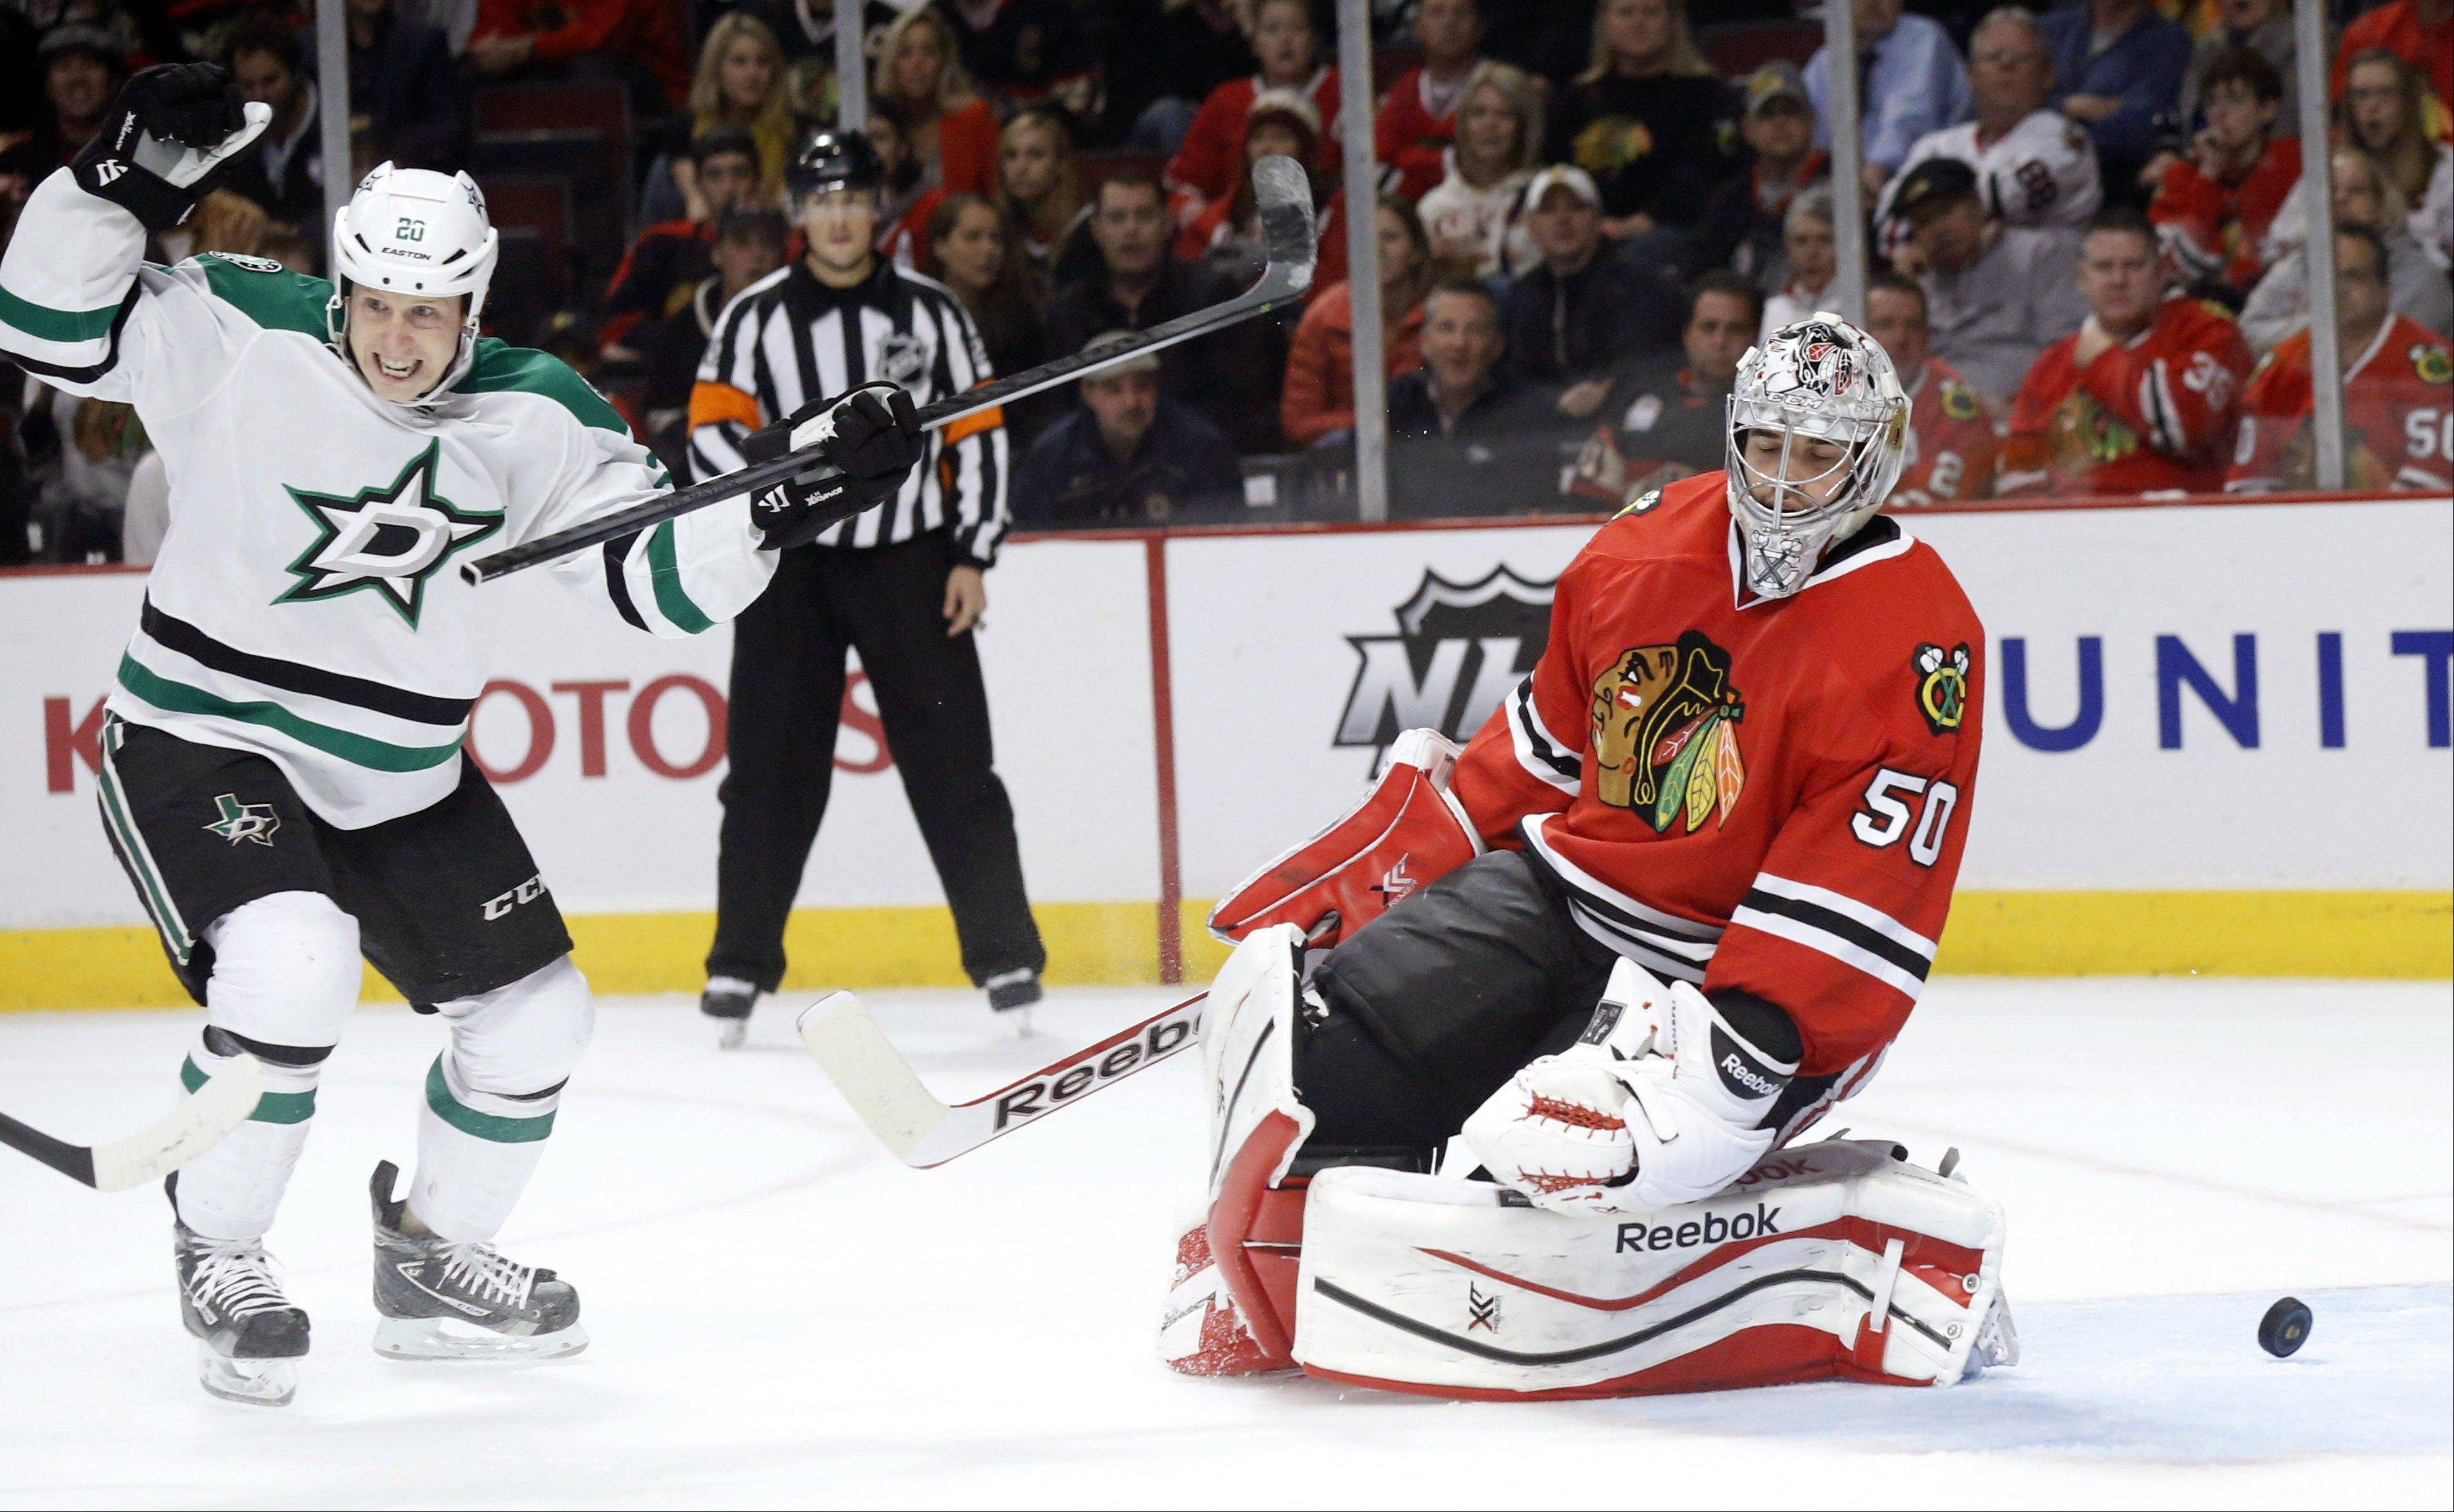 Dallas Stars center Cody Eakin, left, celebrates Valeri Nichushkin's goal as the puck bounces back out of the net behind Chicago Blackhawks goalie Corey Crawford during Tuesday night's game at the United Center.